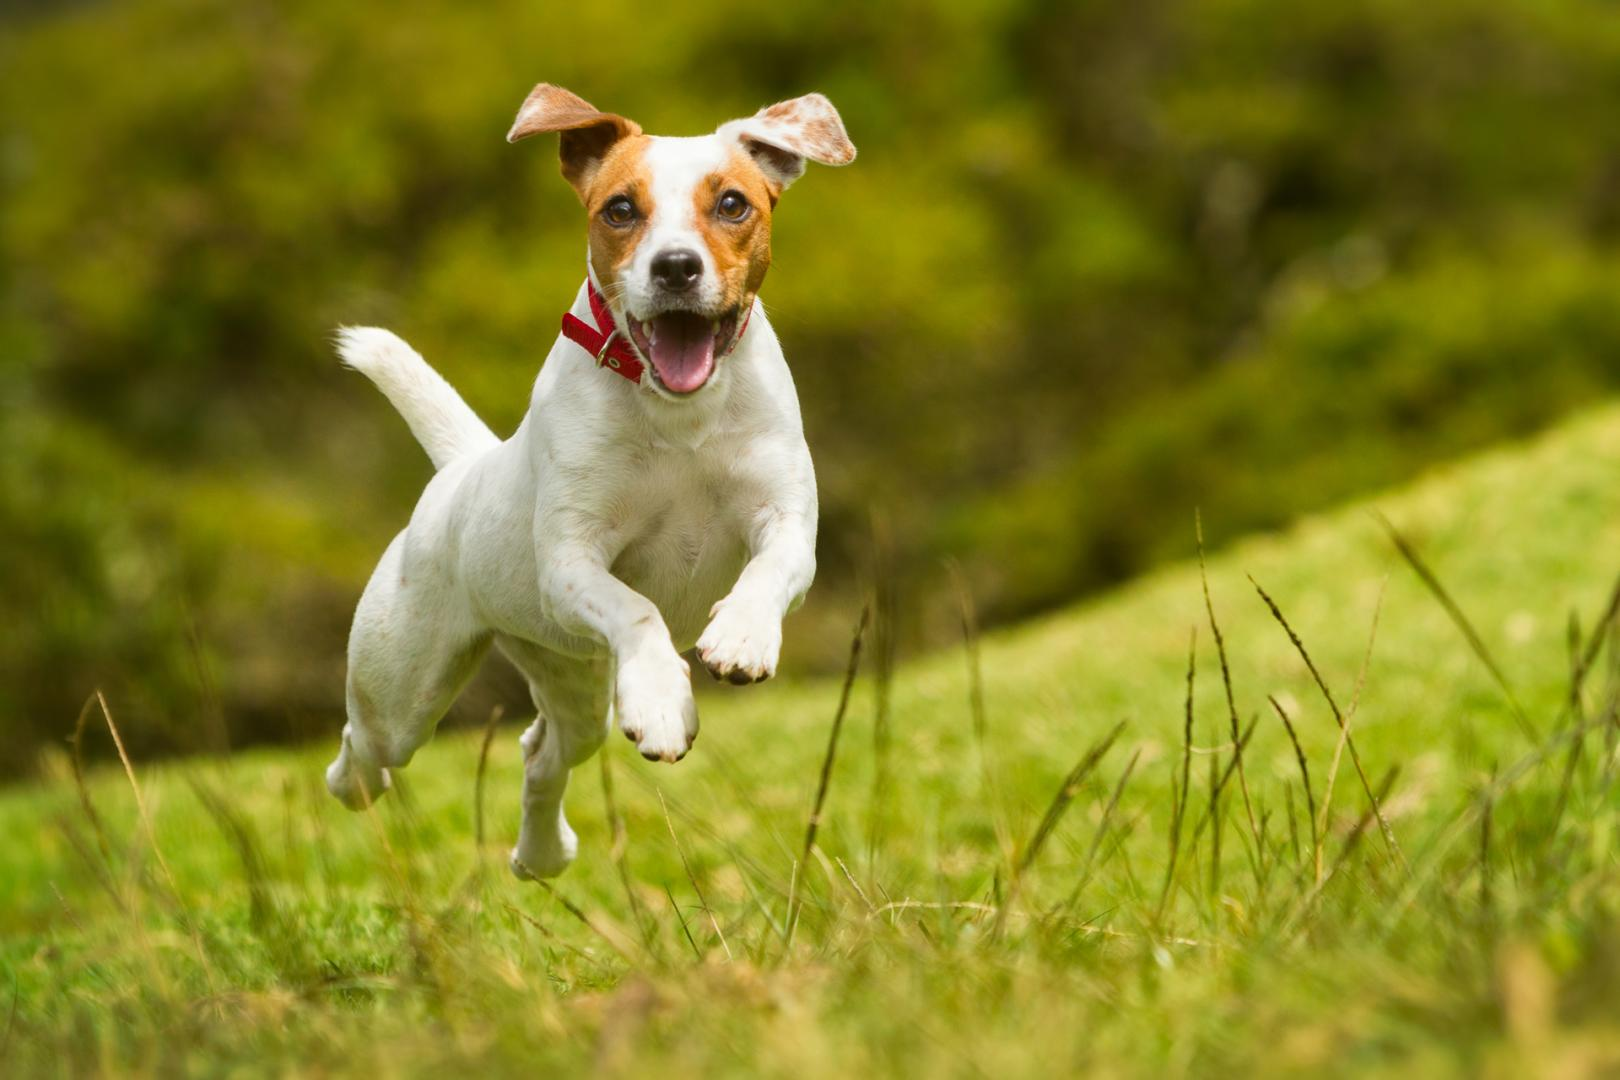 5 Questions for Choosing a Dog Boarding Kennels